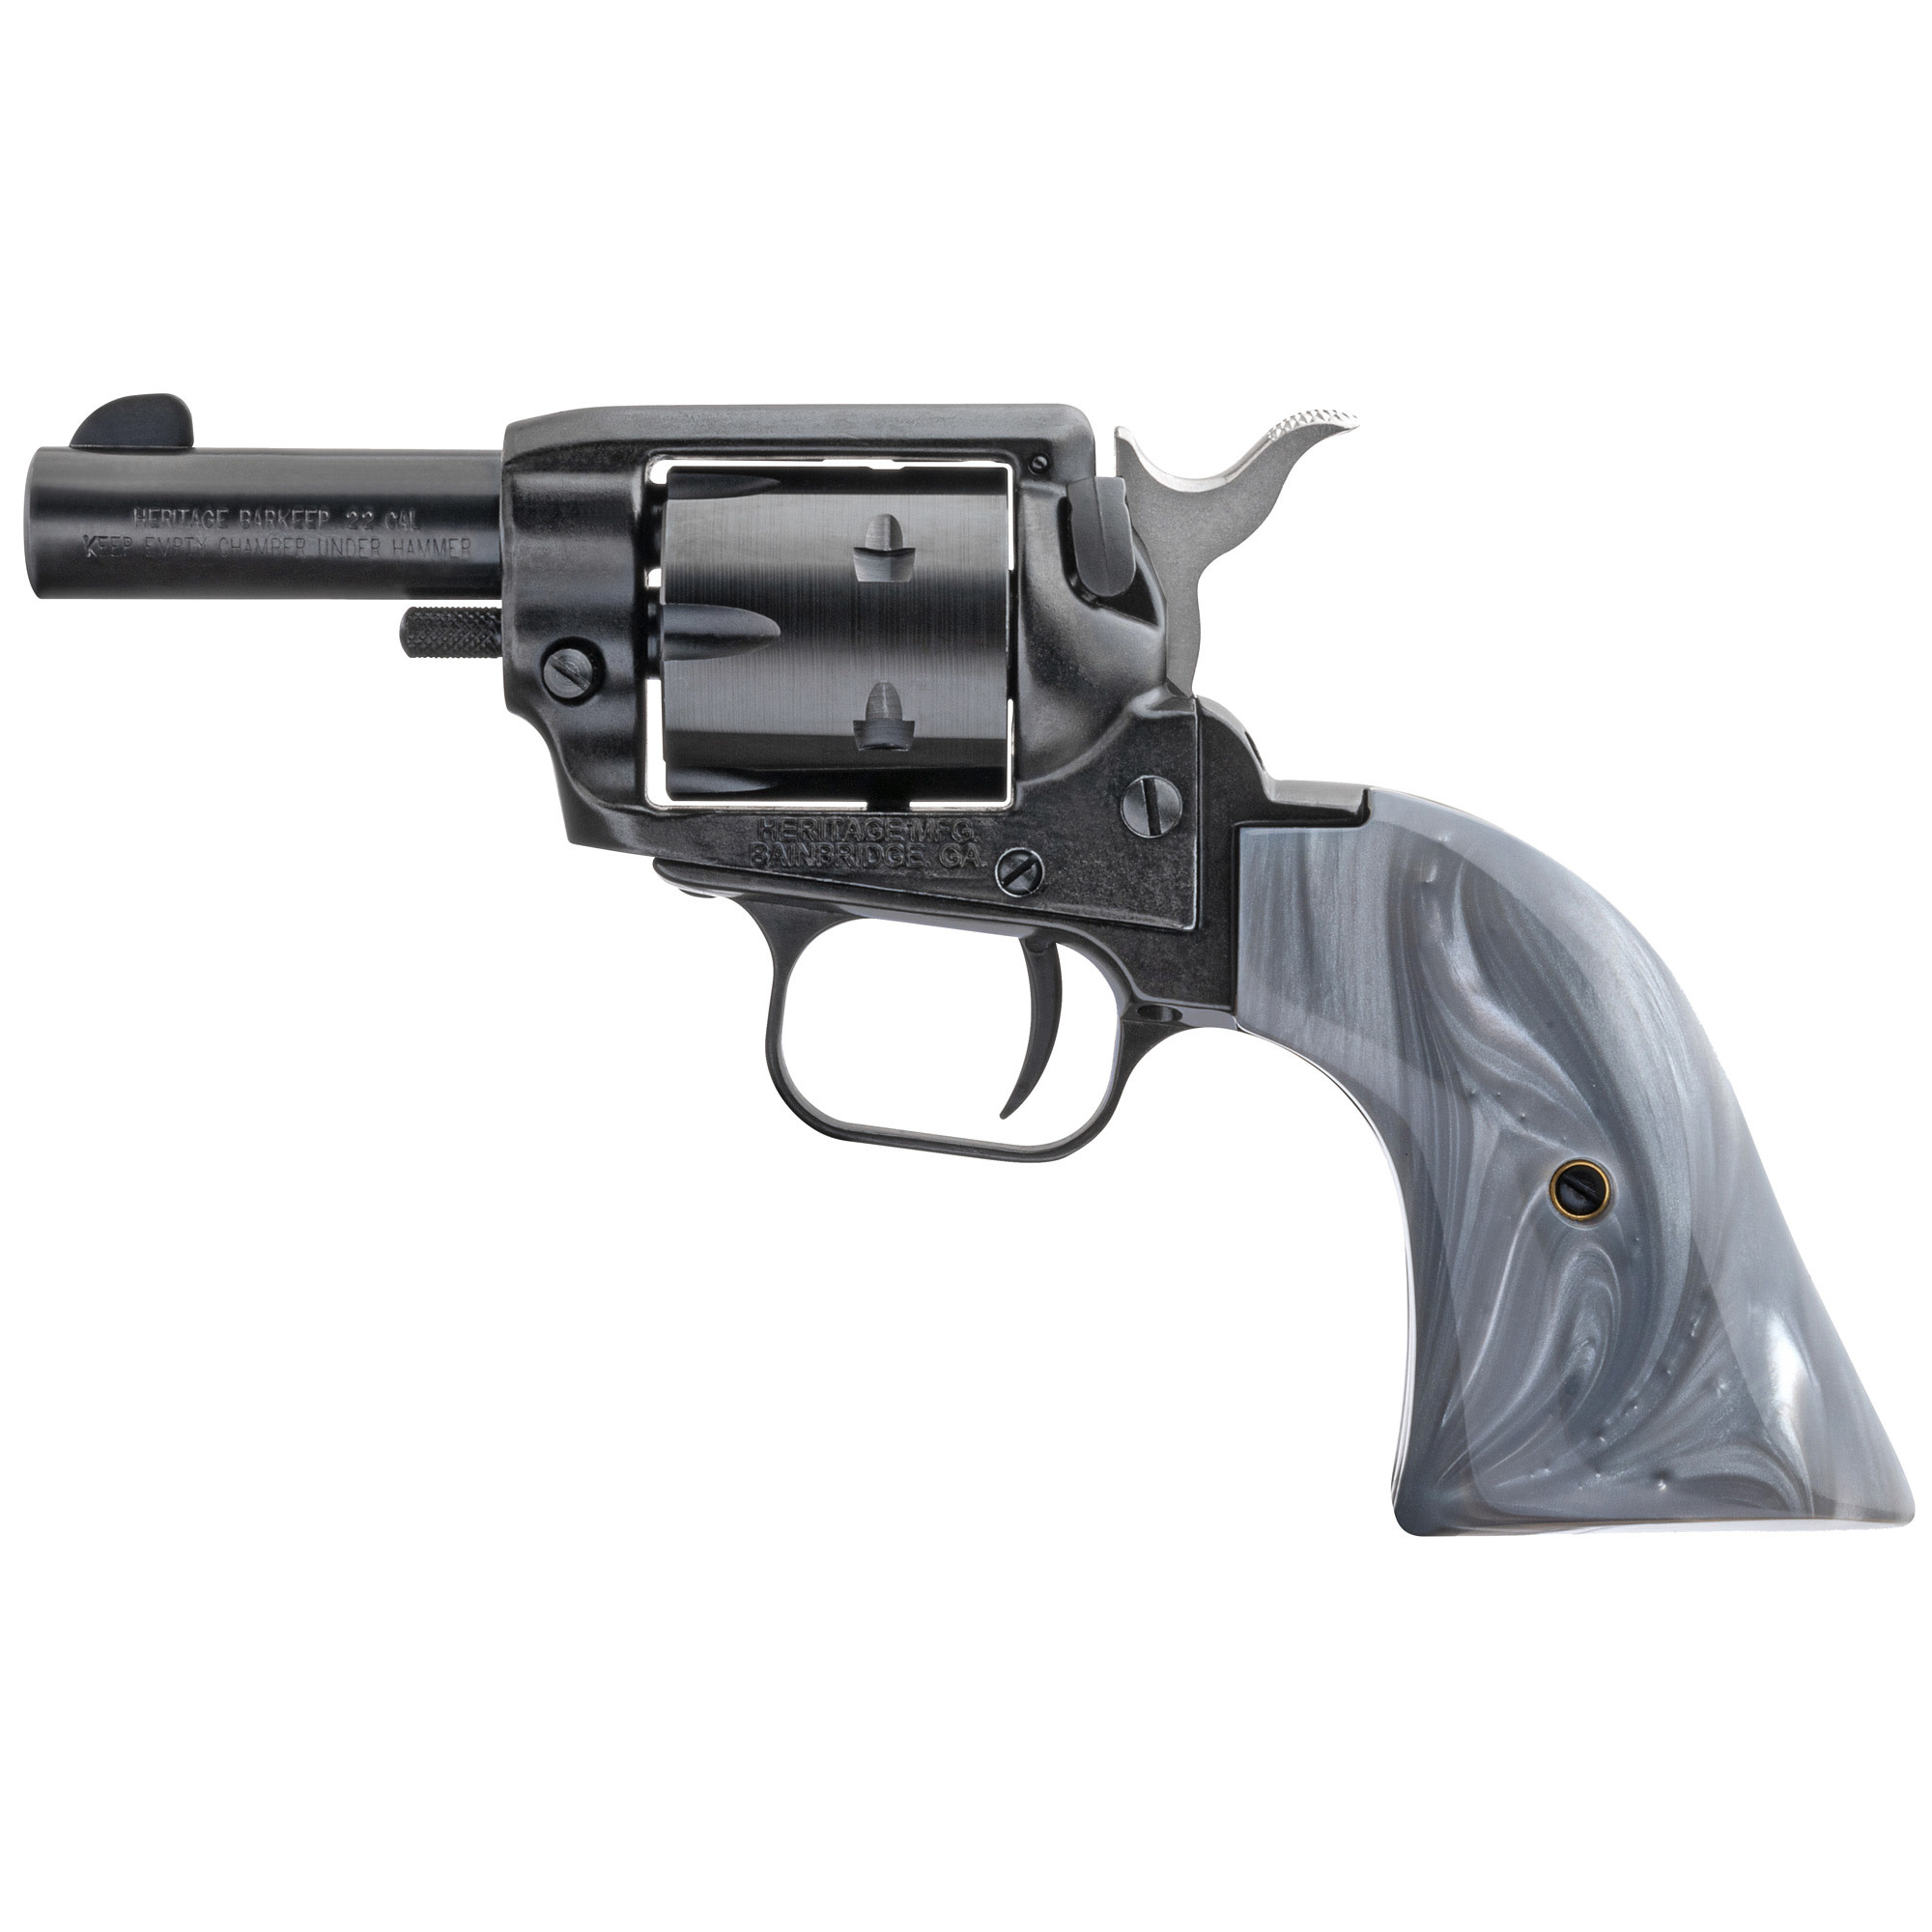 """Heritage RoughRider BarKeep, 22lr, 2"""" barrel, 6 rounds, Gray Pearl Grip"""